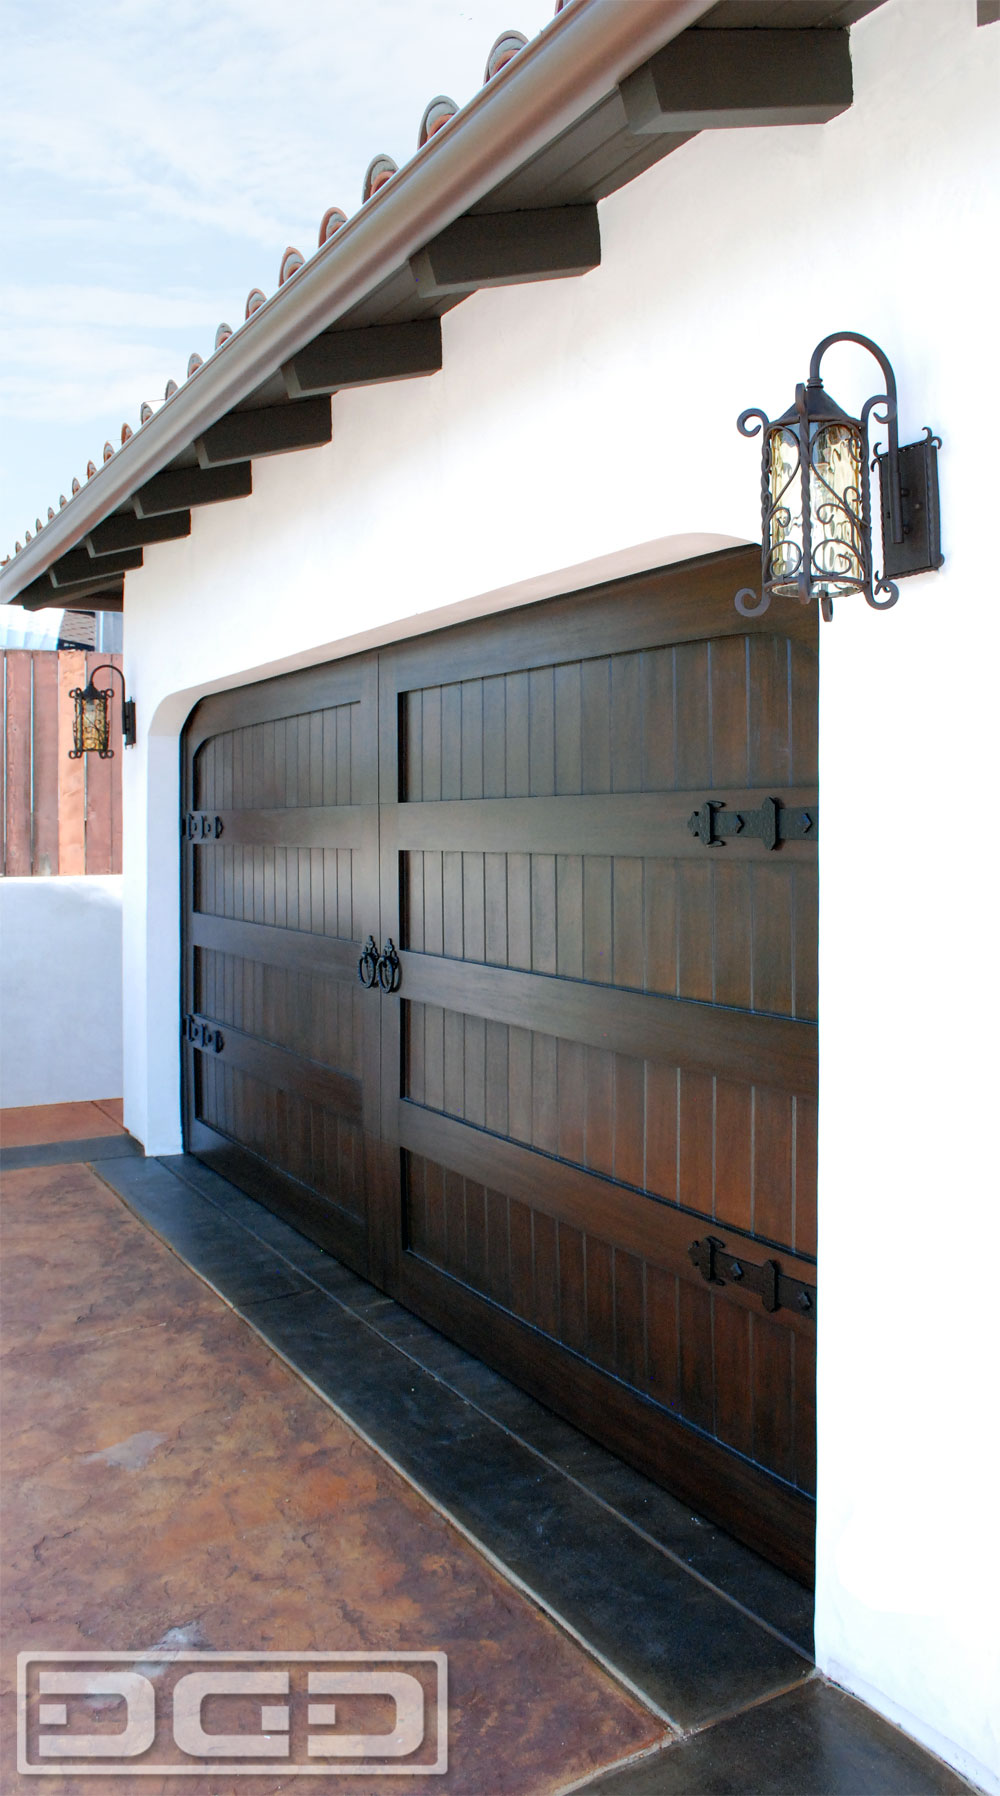 Elegant Custom Architectural Spanish Garage Door In Solid Mahogany Wood With  Decorative Iron Hardware